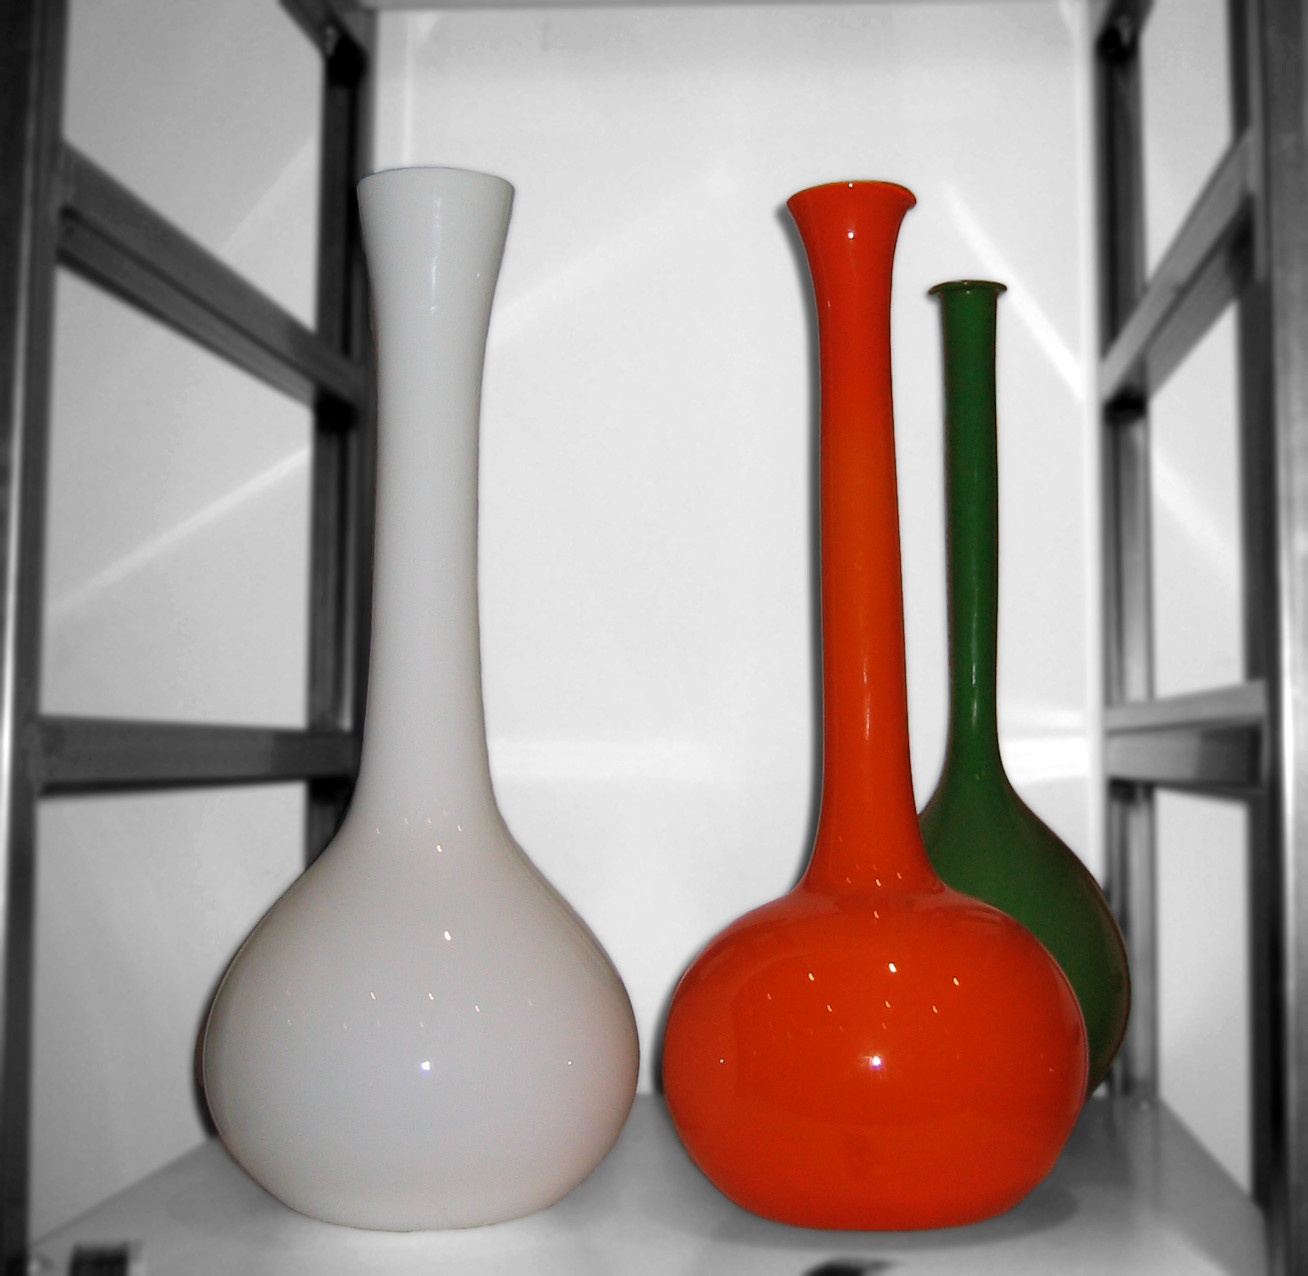 Black Glass Floor Vase Of Vases Design Ideas Modern Floor and Table Vases On Hayneedle In Modern Floor Vases Decorative All Contemporary Design with Red White and Old Green Blinking Color that